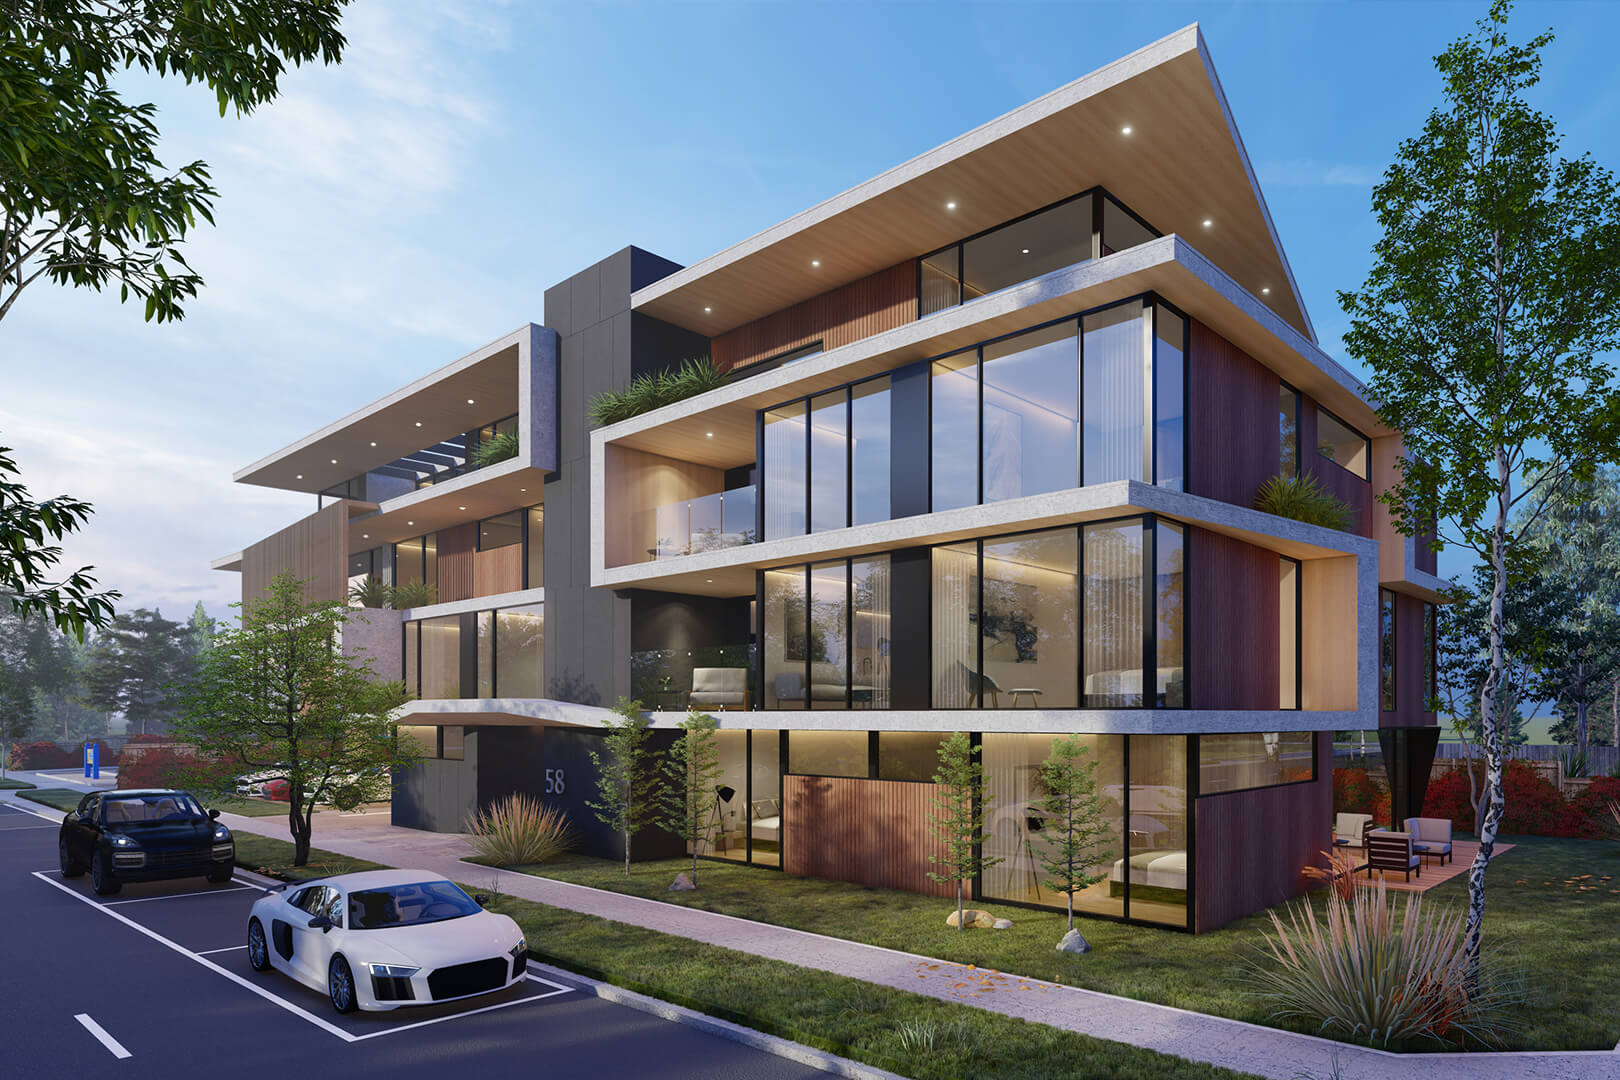 Specialist Disability Accommodation SDA design in Melbourne - Design by Sky Architect Studio. Modern Luxury Apartment design